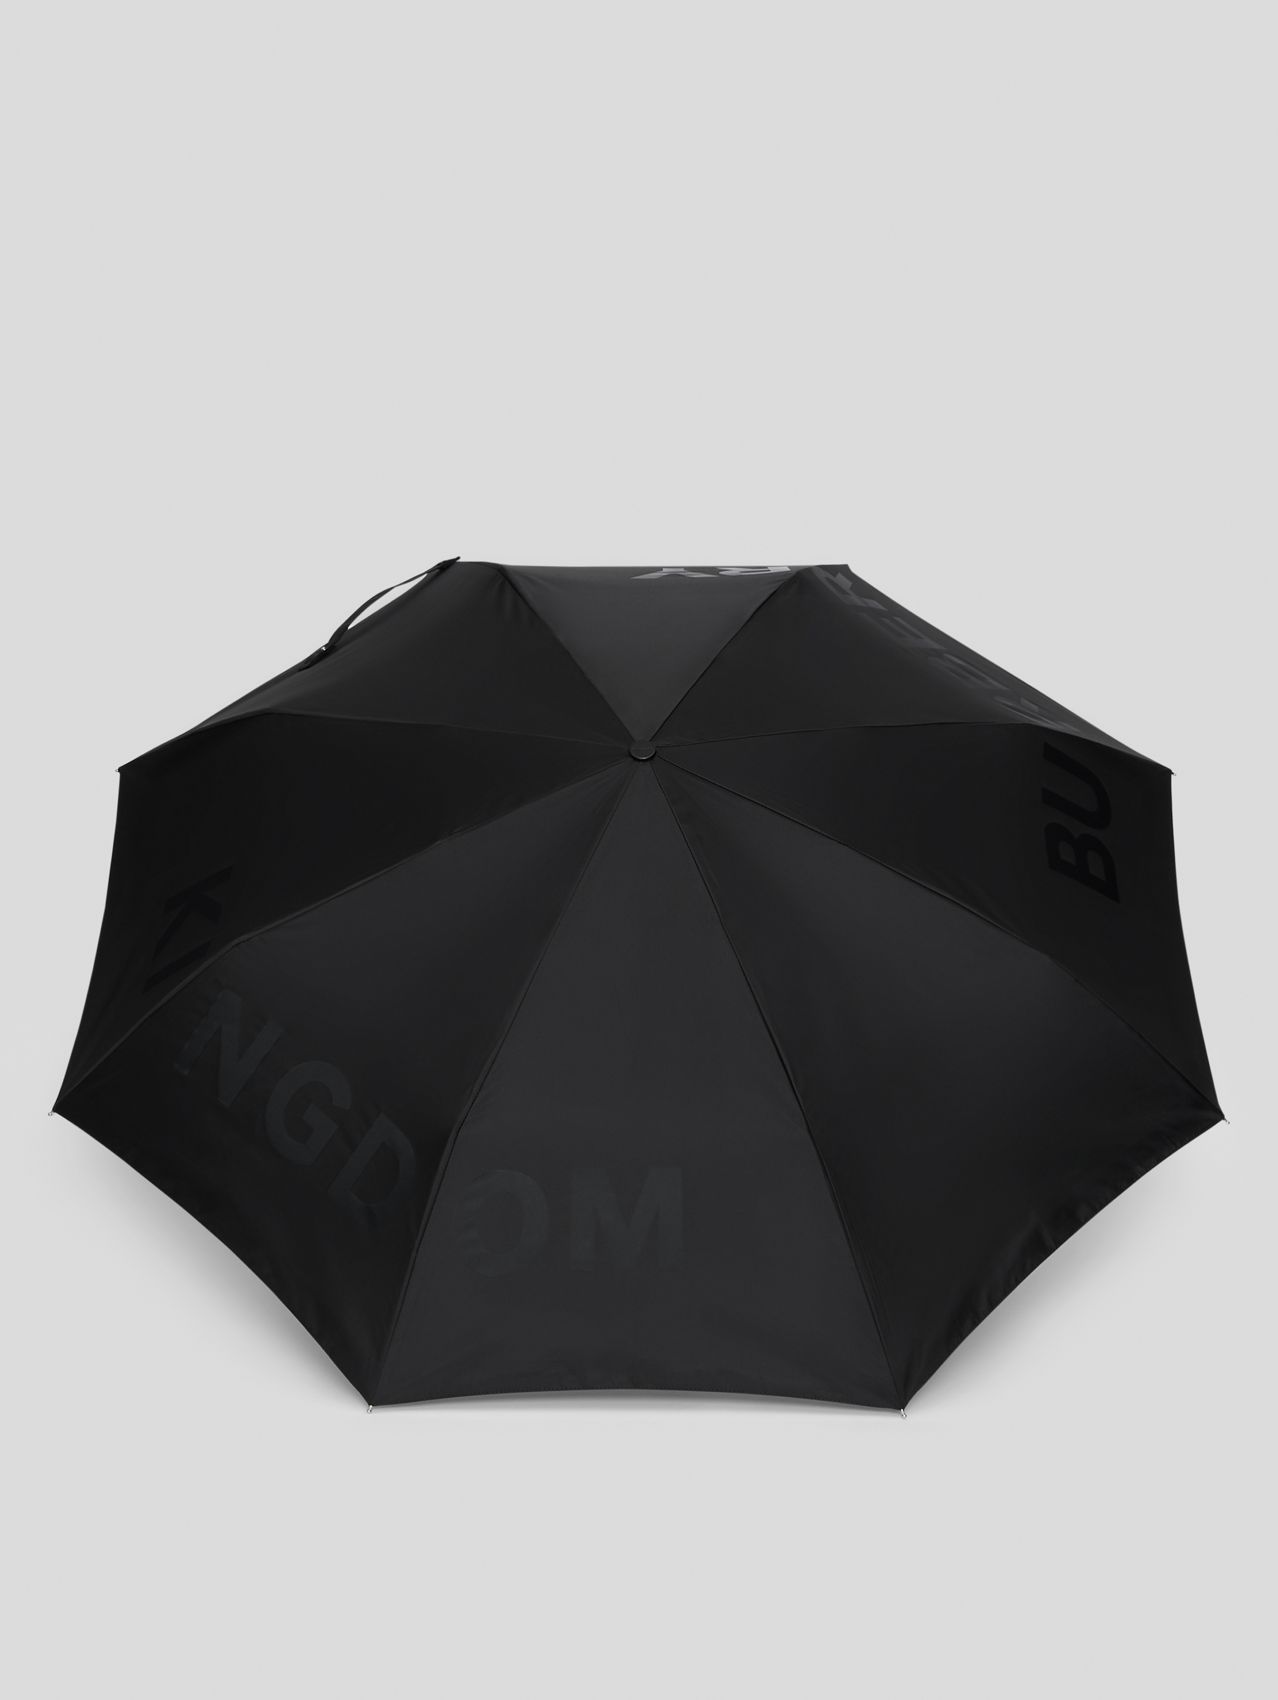 Kingdom Print Folding Umbrella in Black